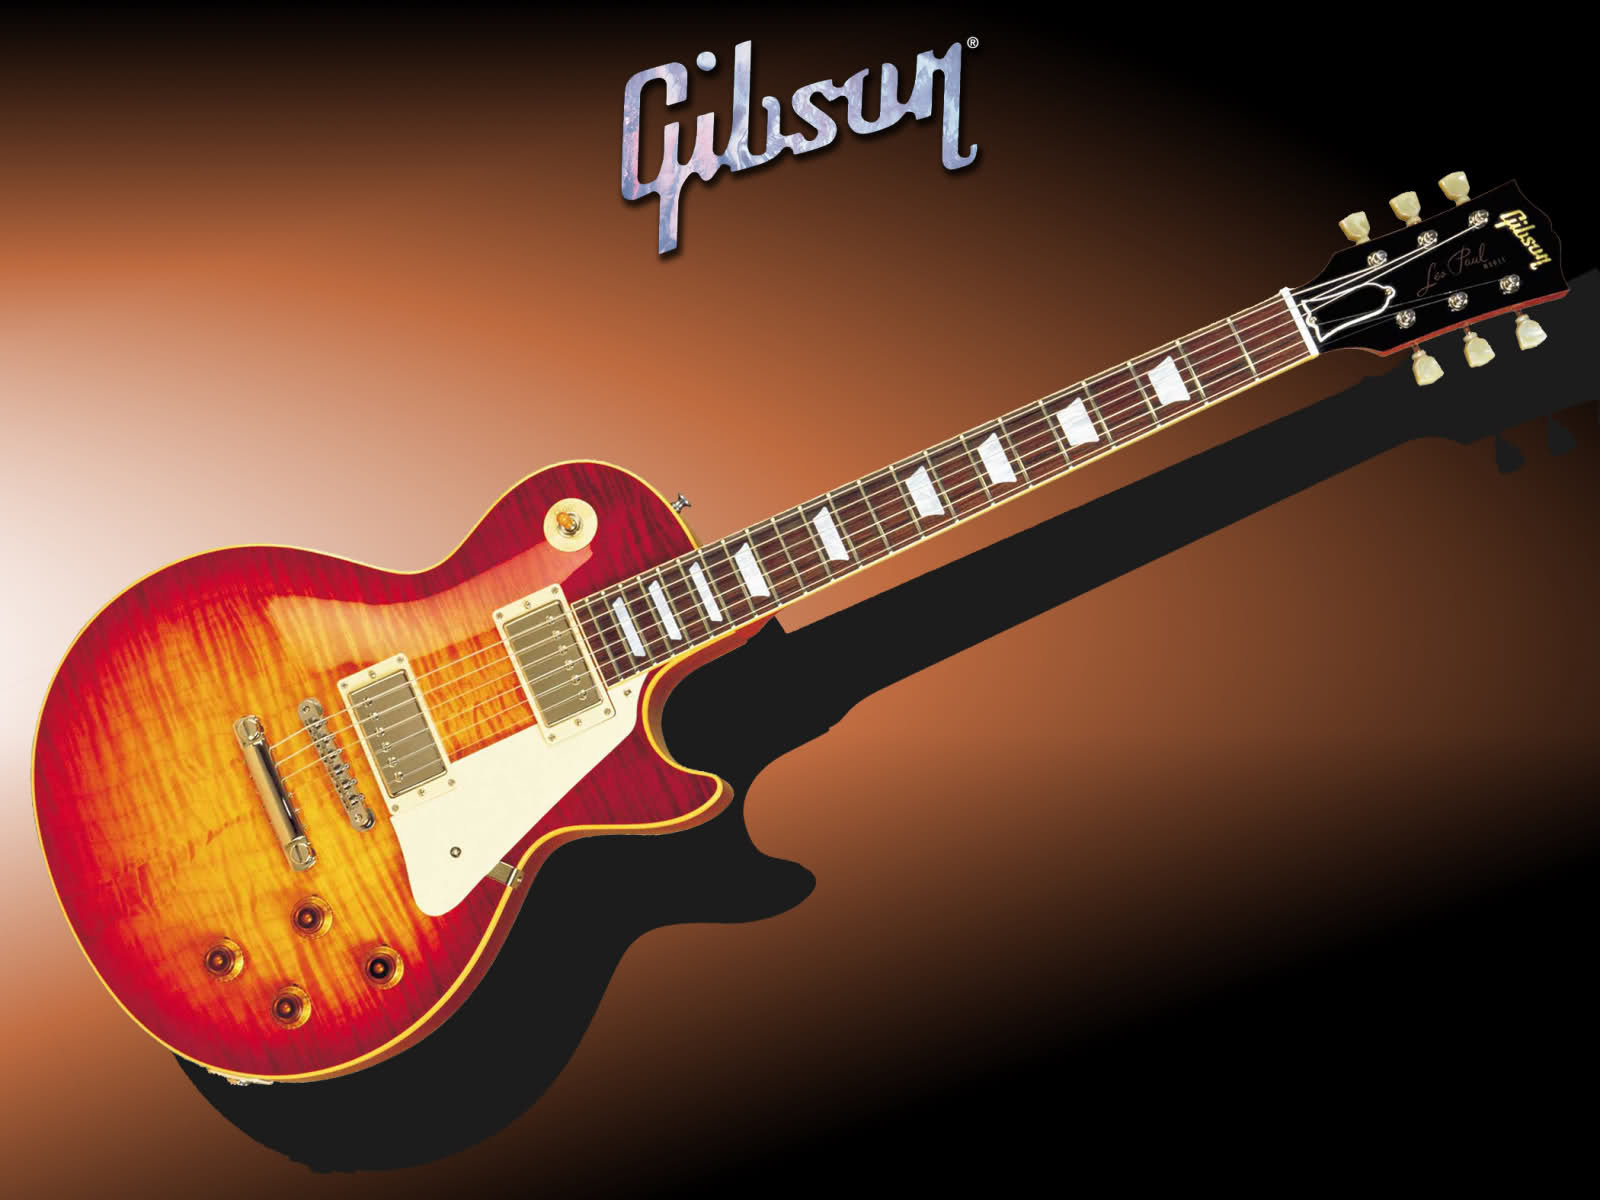 Epiphone guitar wallpaper images free download 1600x1200 voltagebd Gallery